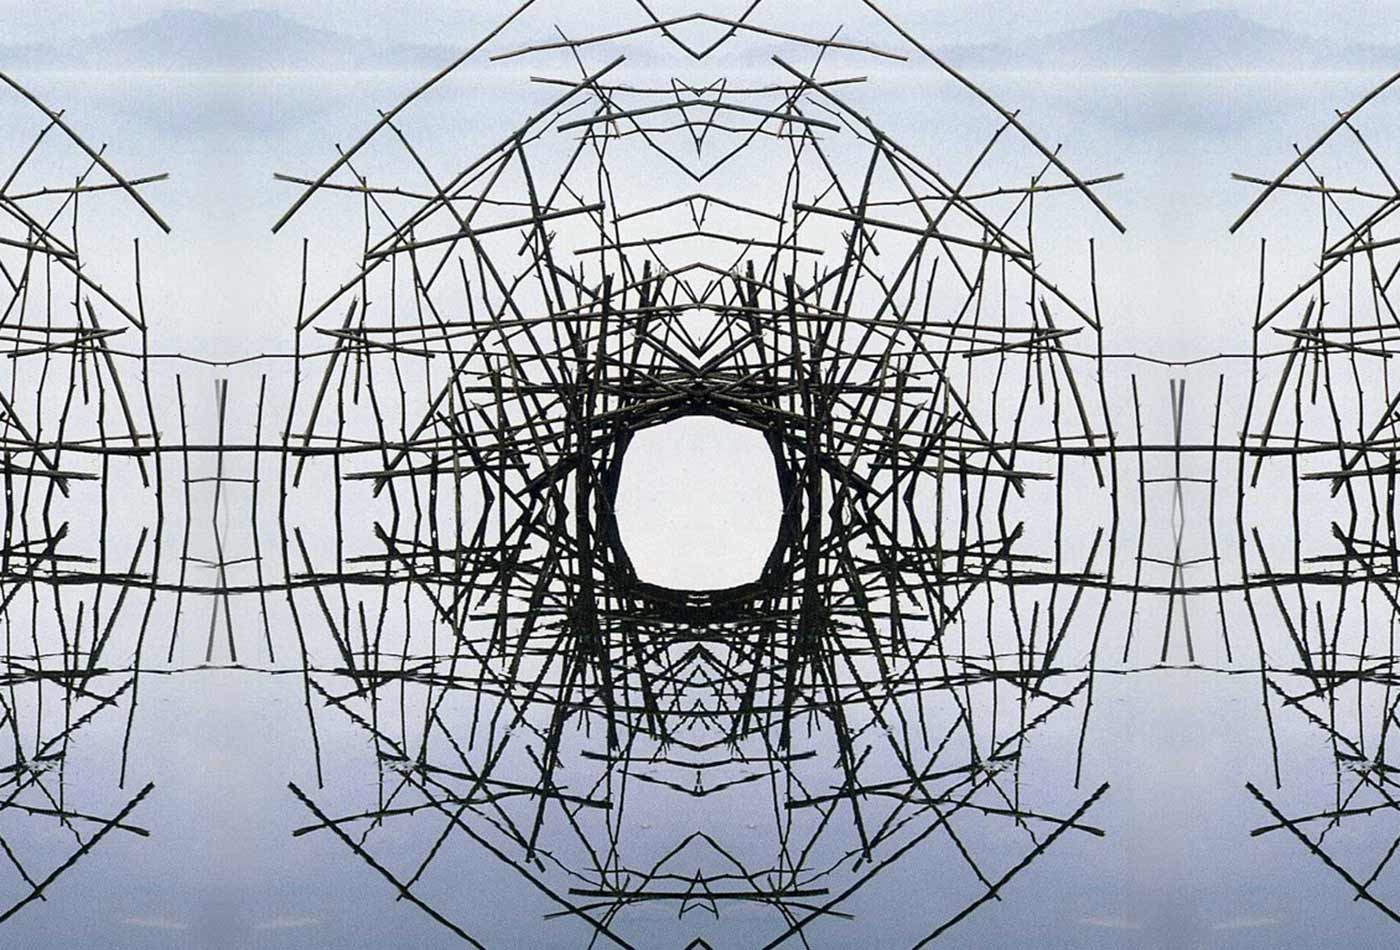 Andy Goldsworthy, Montage by iuri, Sticks Framing a Lake